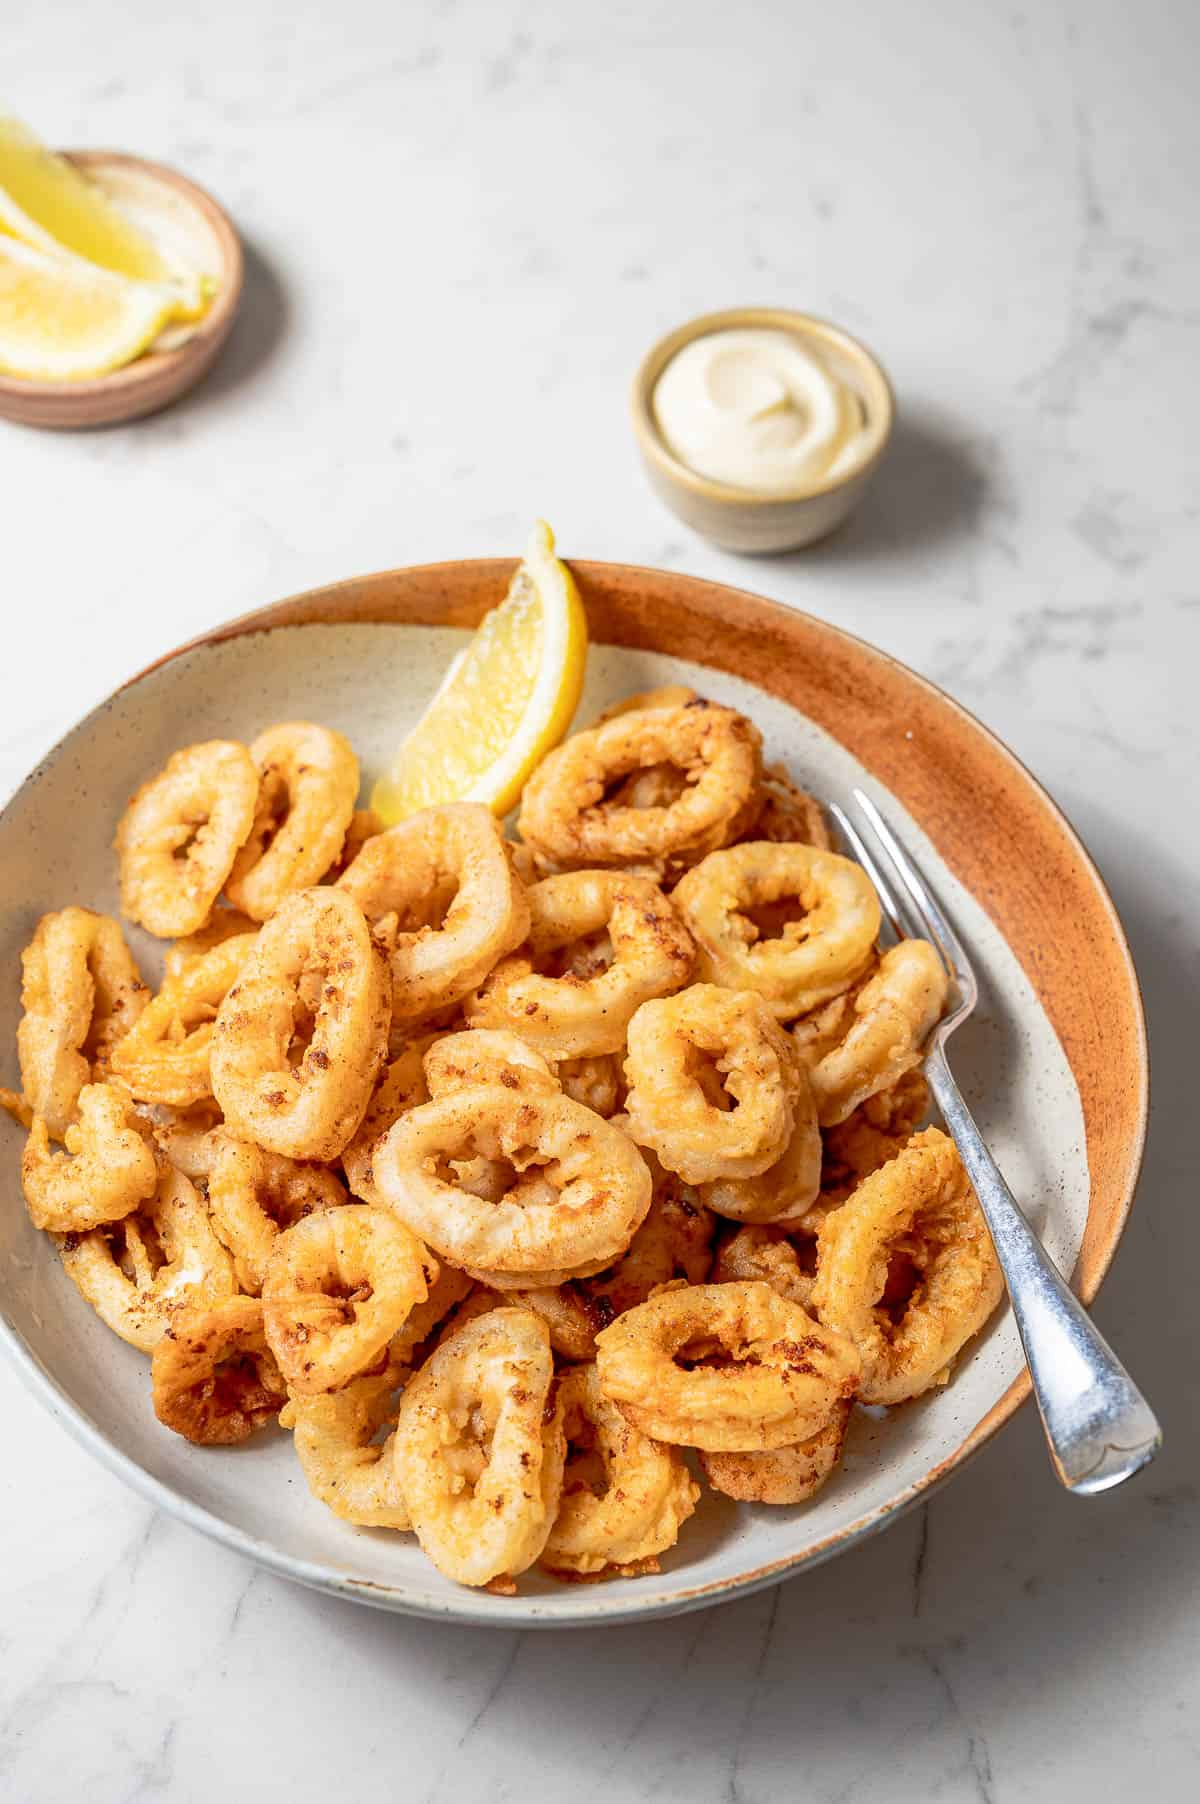 Bowl of fried calamari with lemon wedges and alioli sauce in a small bowl.